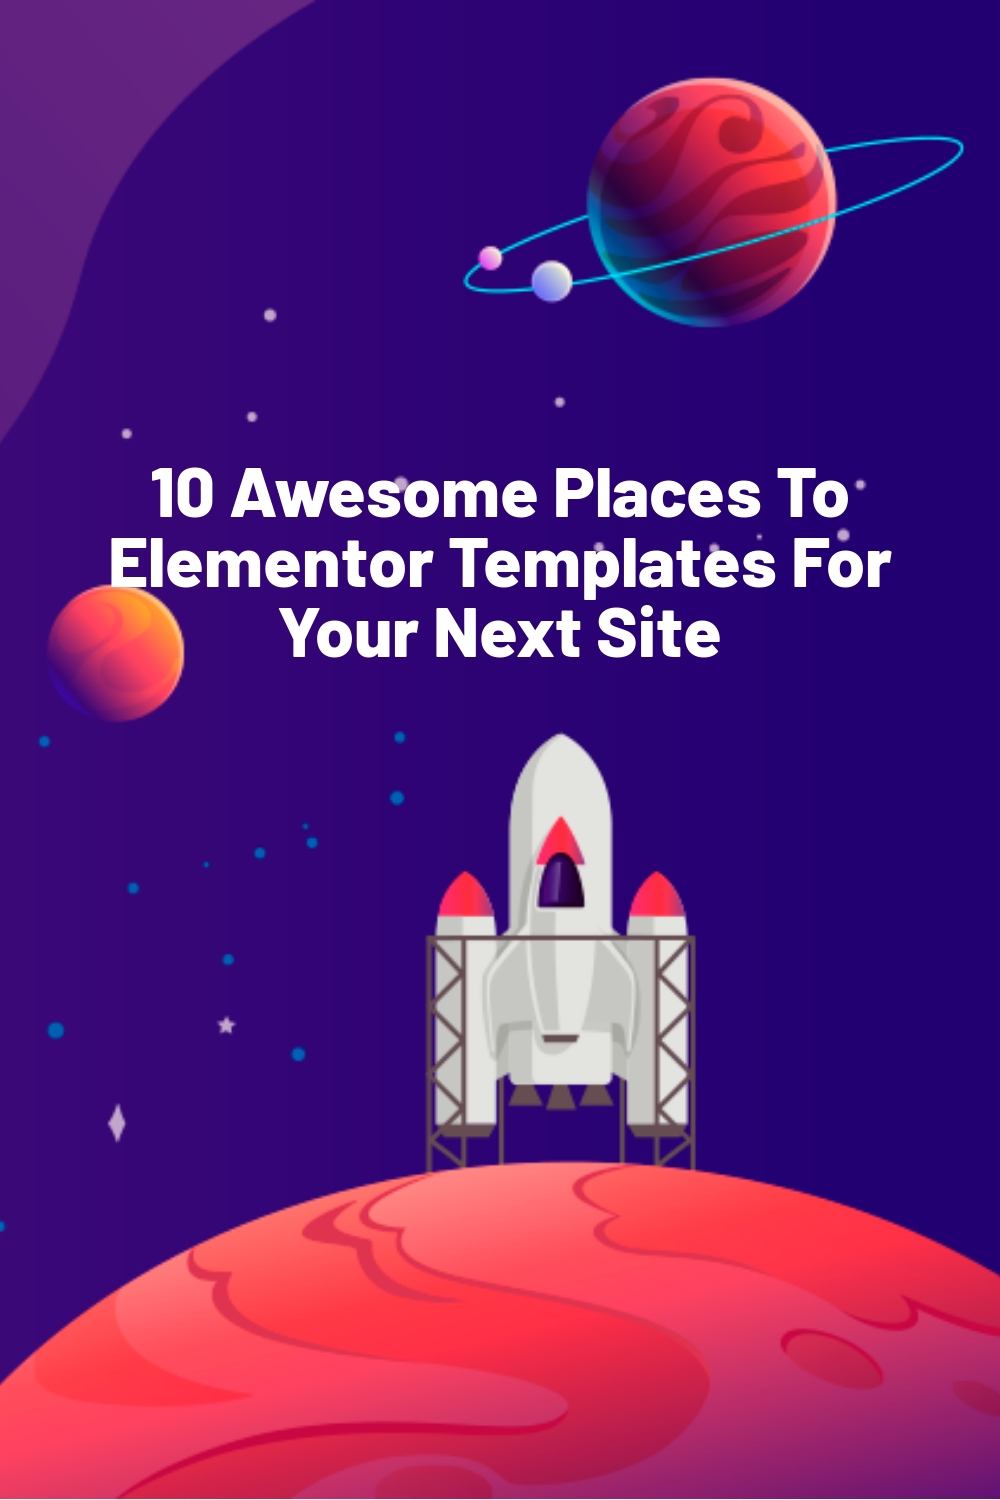 10 Awesome Places To Elementor Templates For Your Next Site